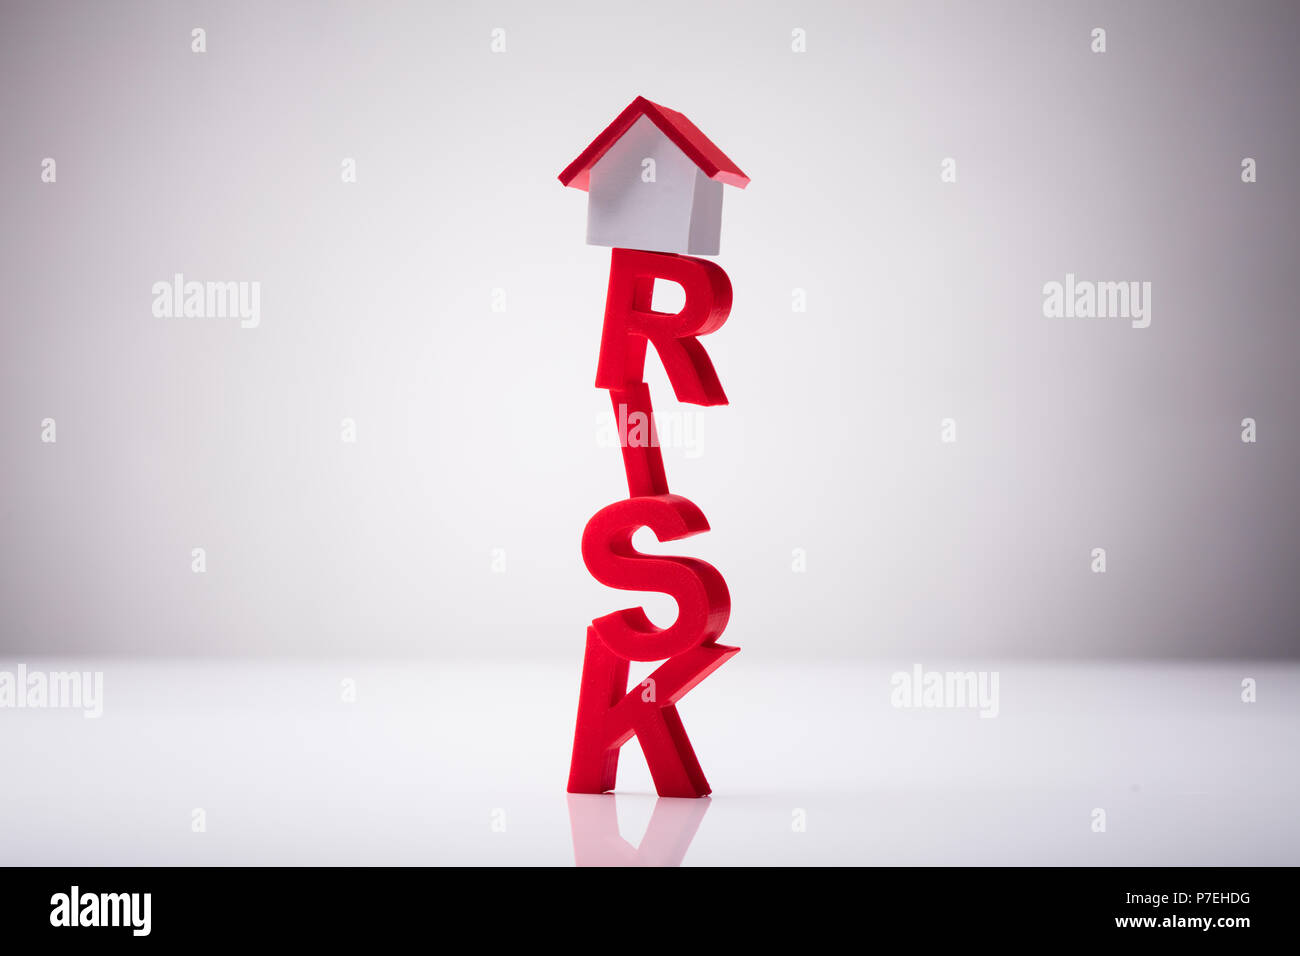 Small House Model Over Risk Word Against White Background Stock Photo